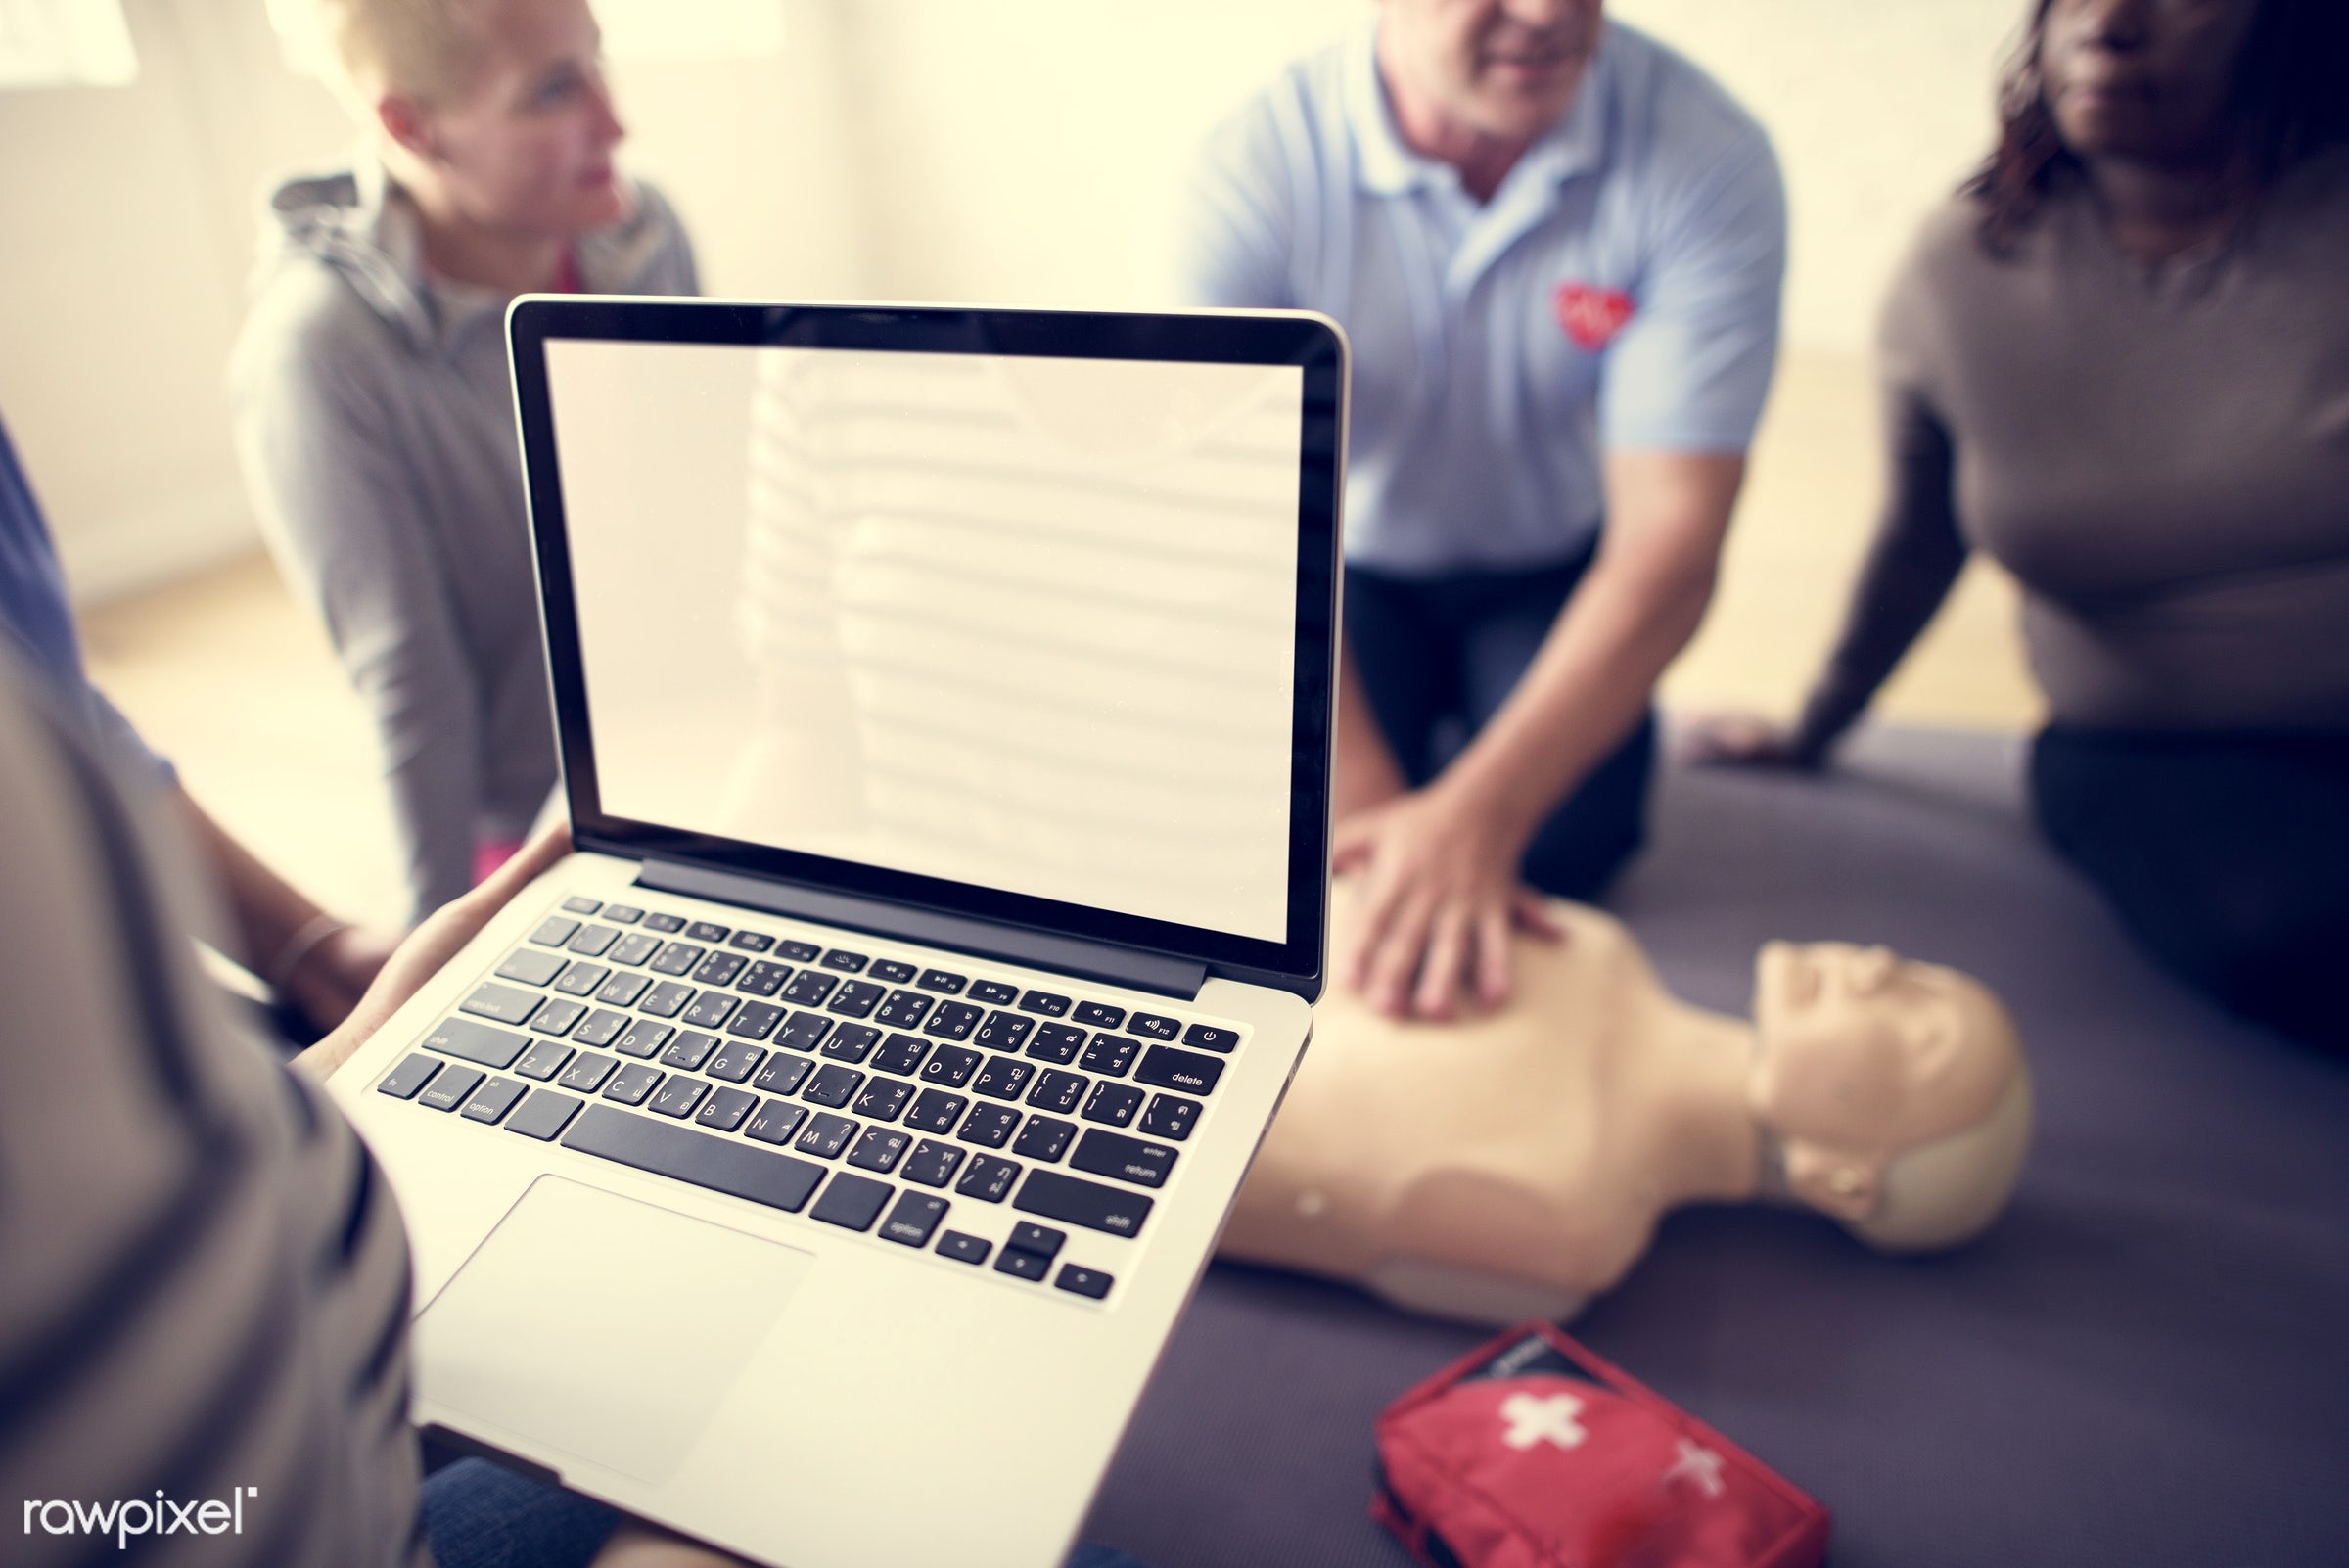 cpr training, person, knowledge, technology, save, first aid, treatment, resuscitation, emergency, indoors, aid, people,...